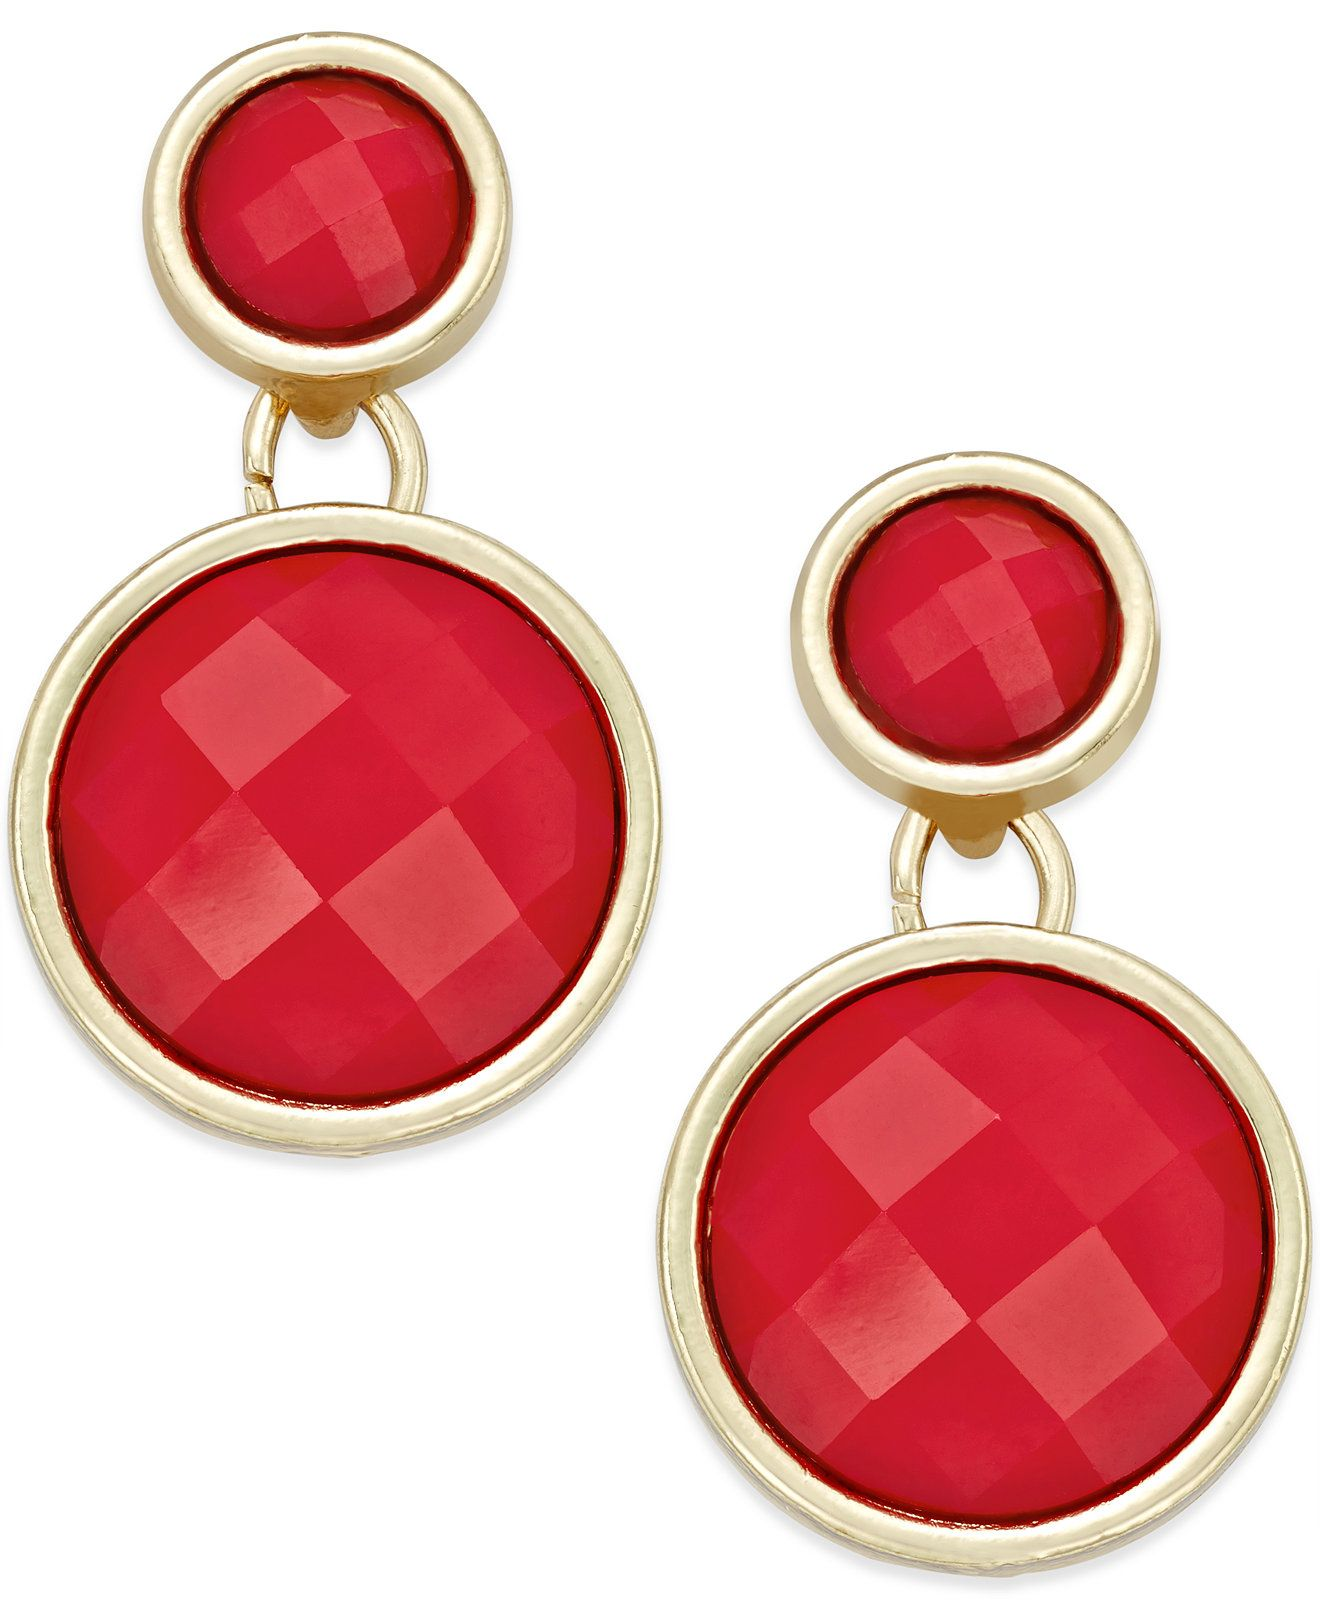 INC International Concepts GoldTone Large Red Circle Drop Earrings